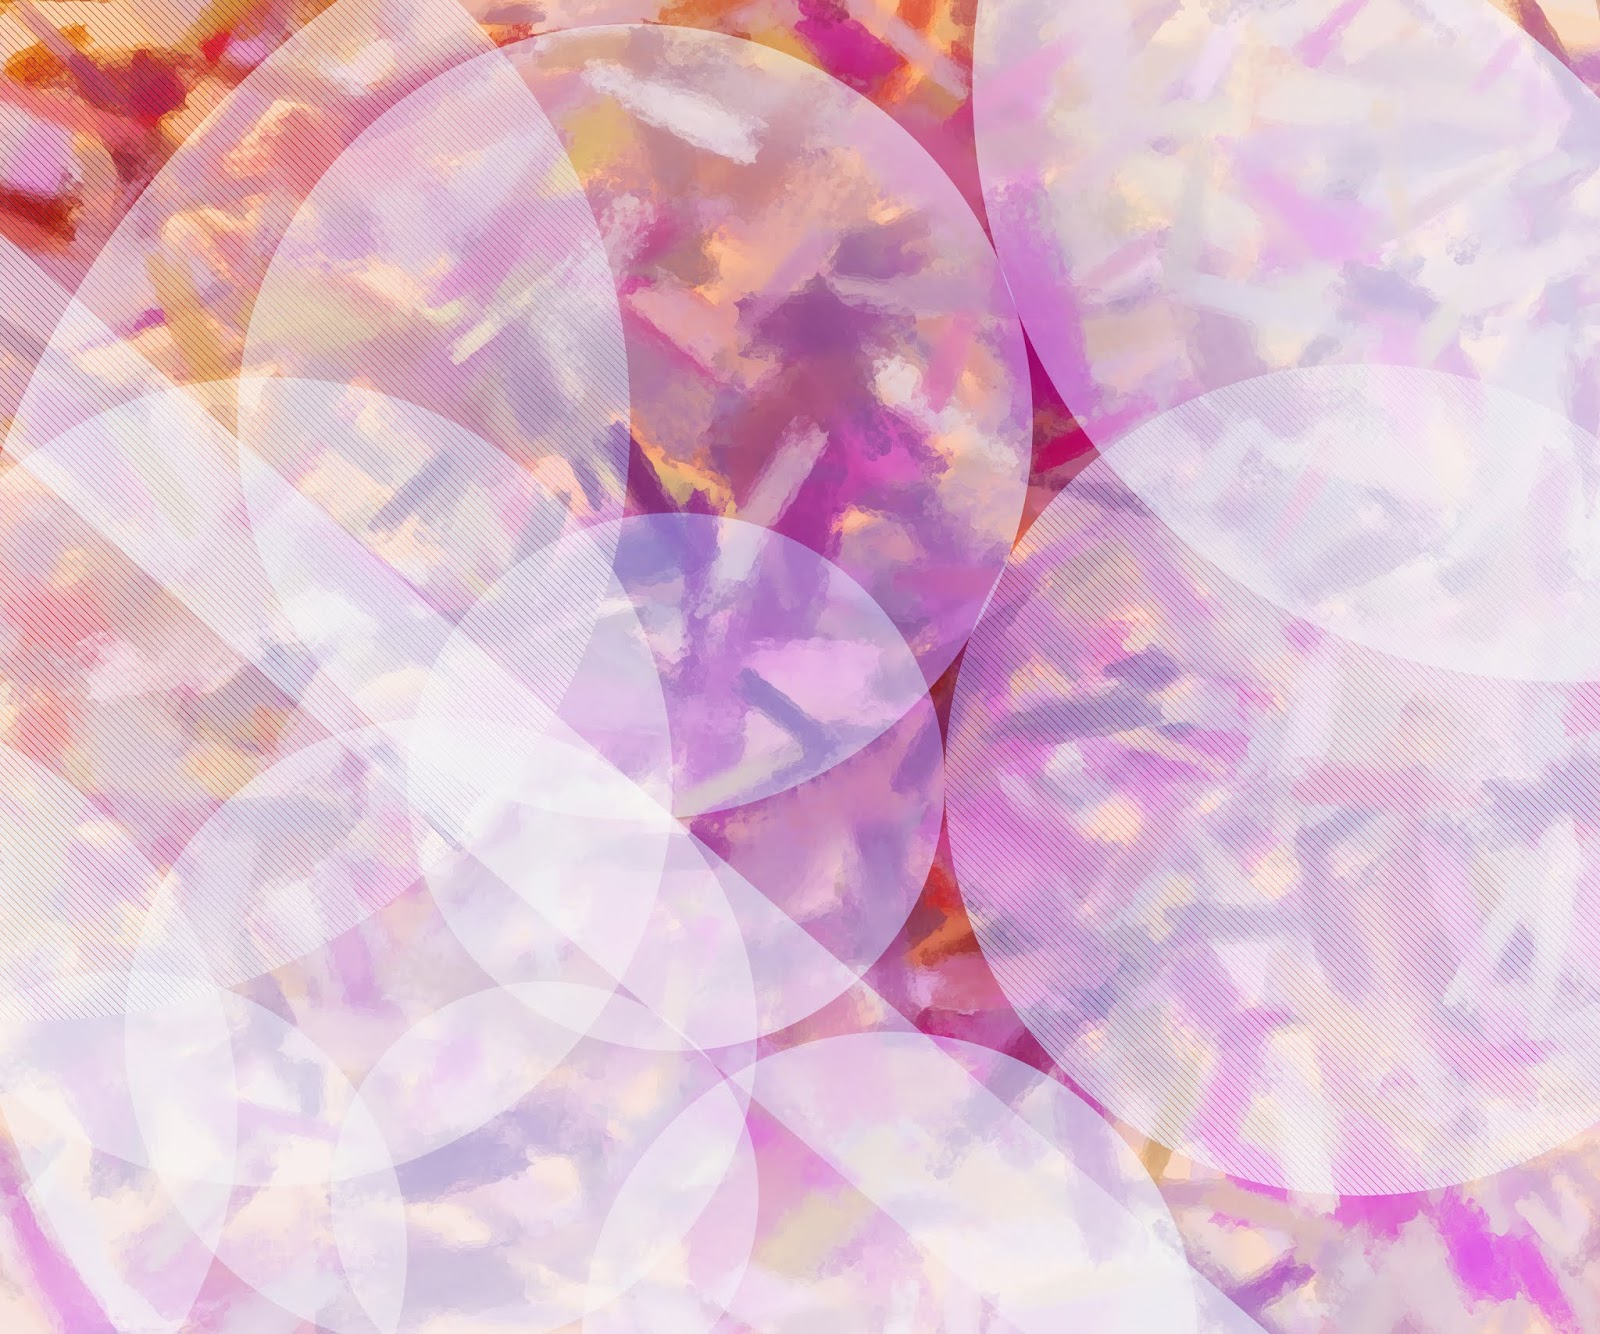 White and Pink abstract background